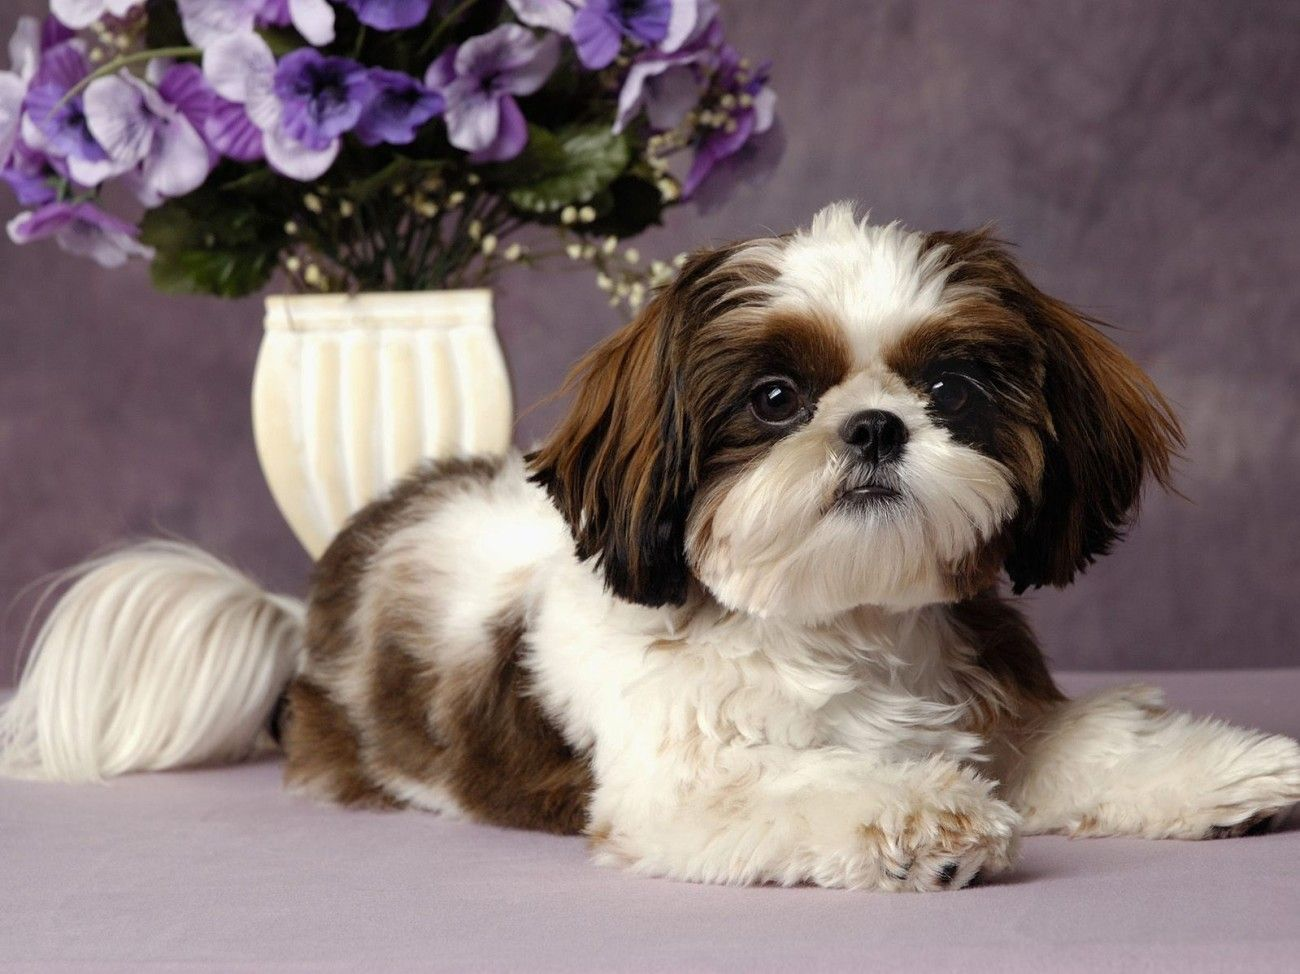 Free Shih Tzu Desktop Wallpaper Shih Tzu Puppies